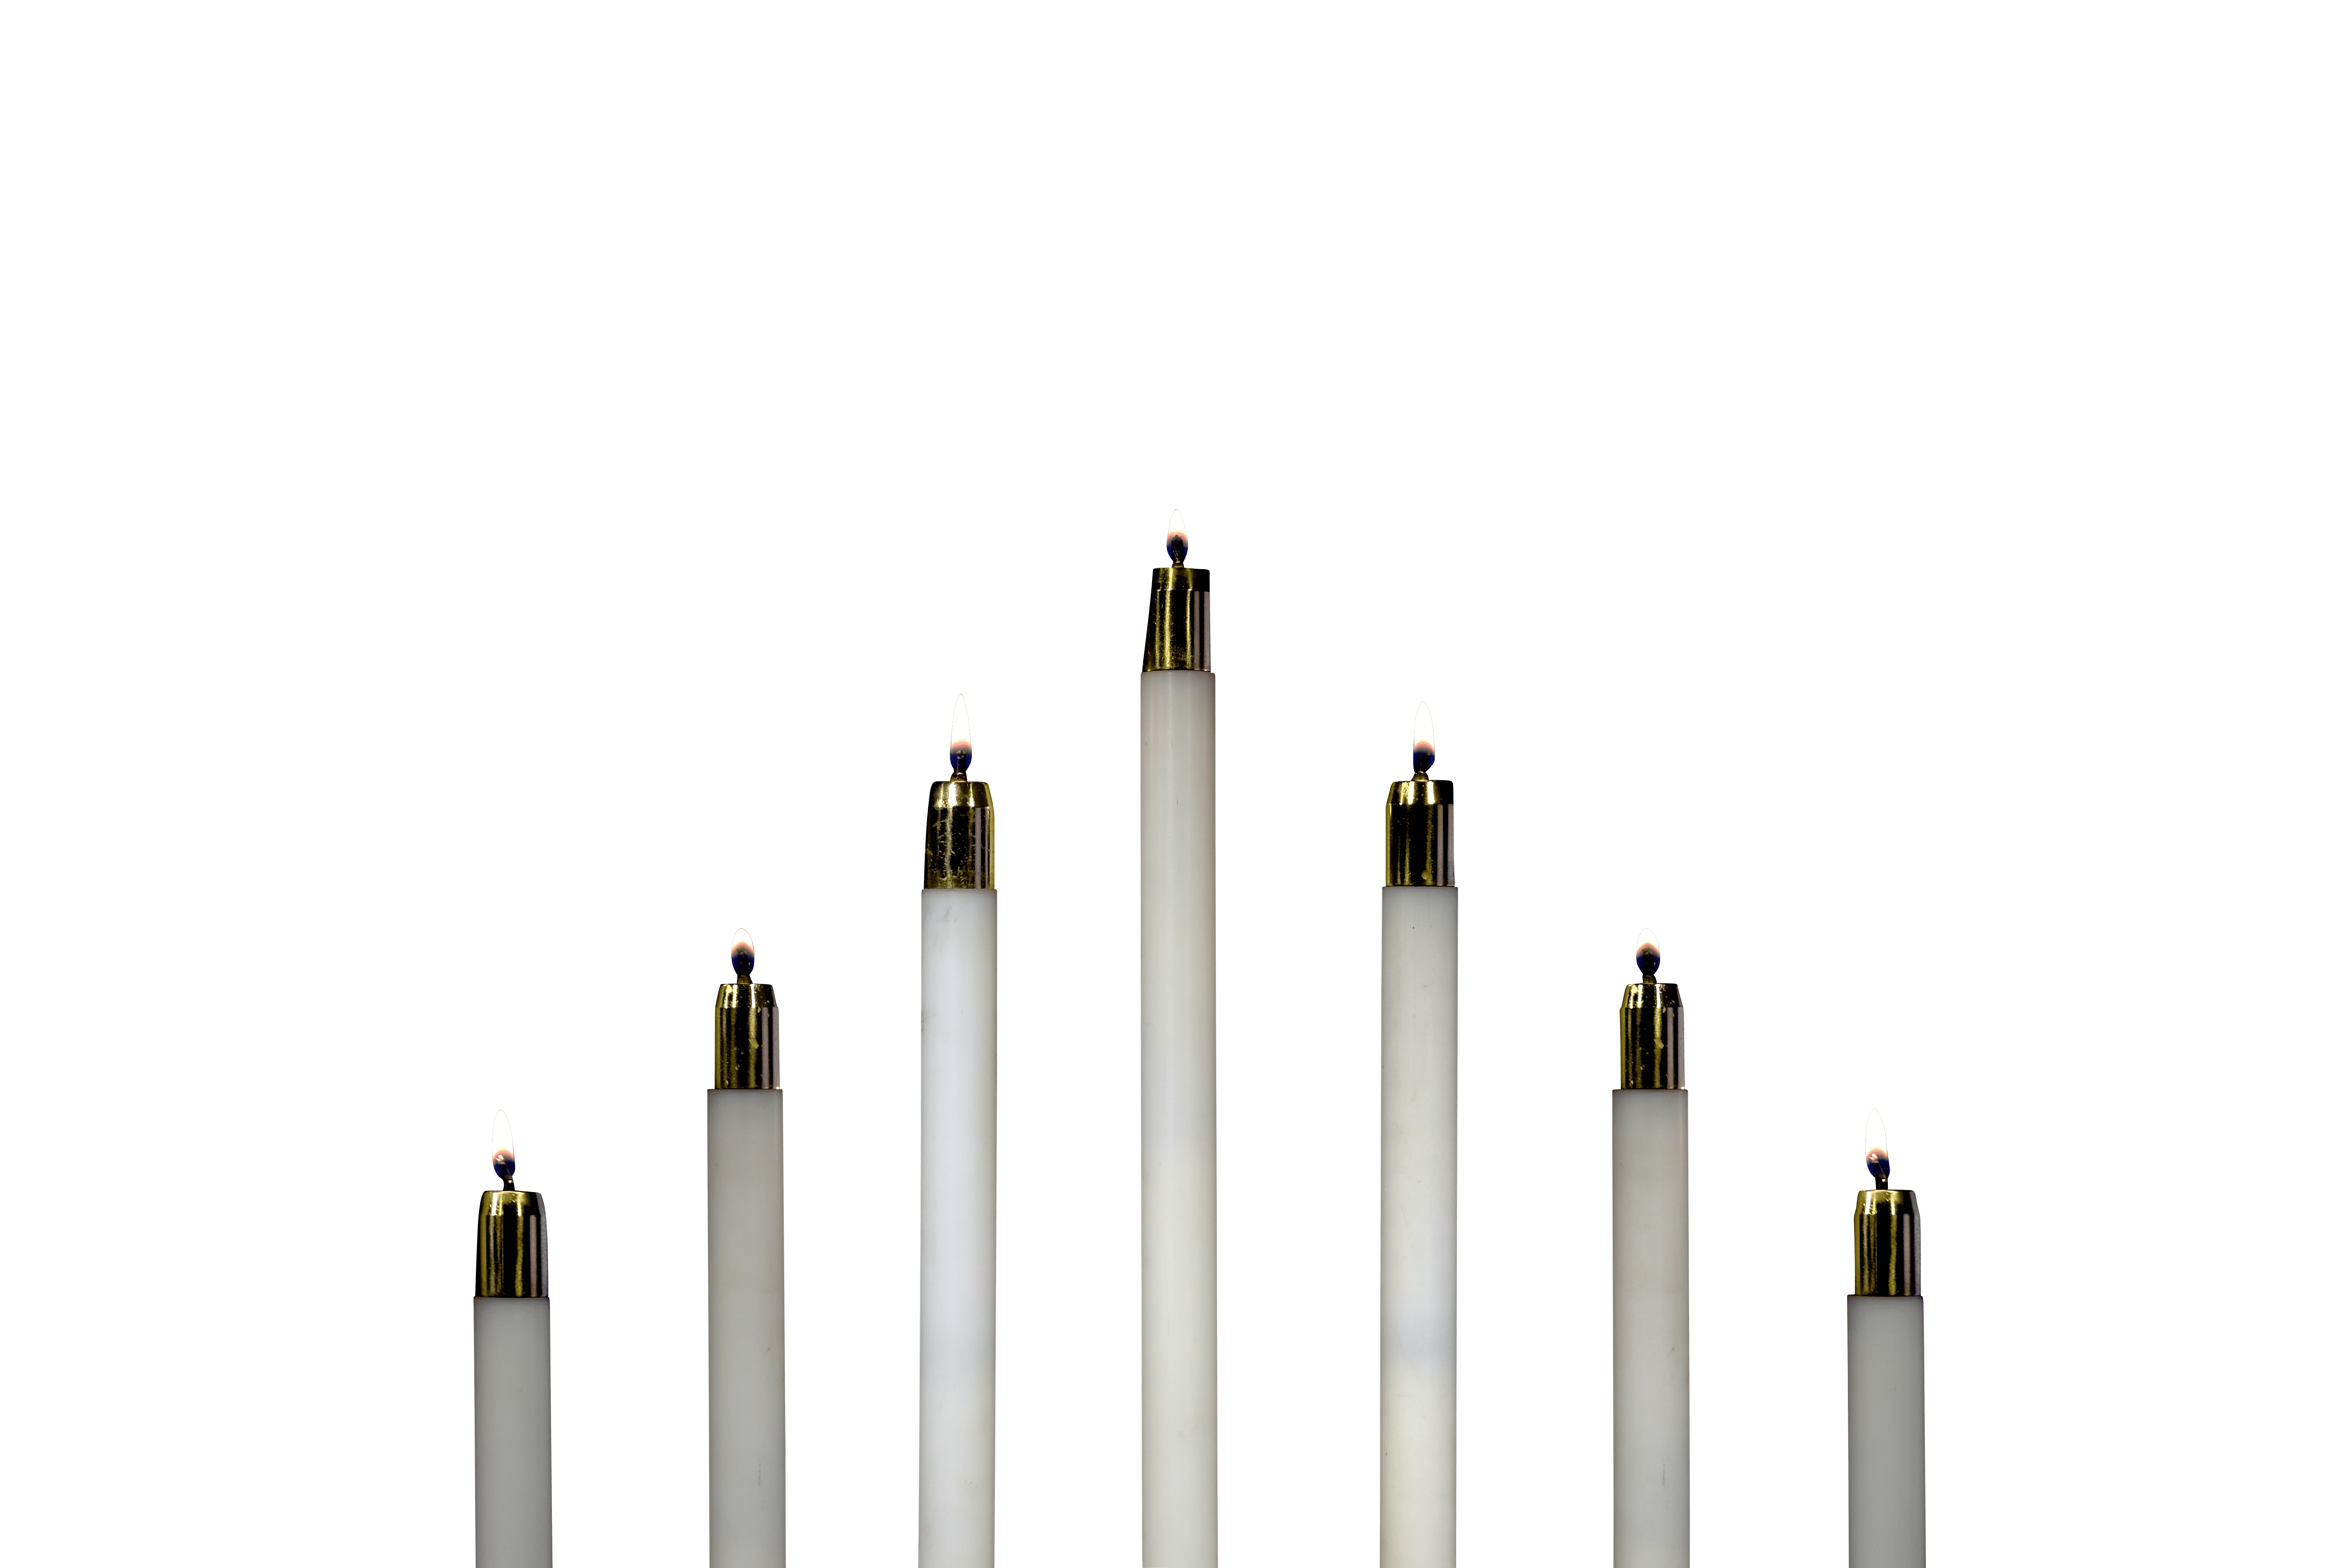 Holy candles transparent background.png